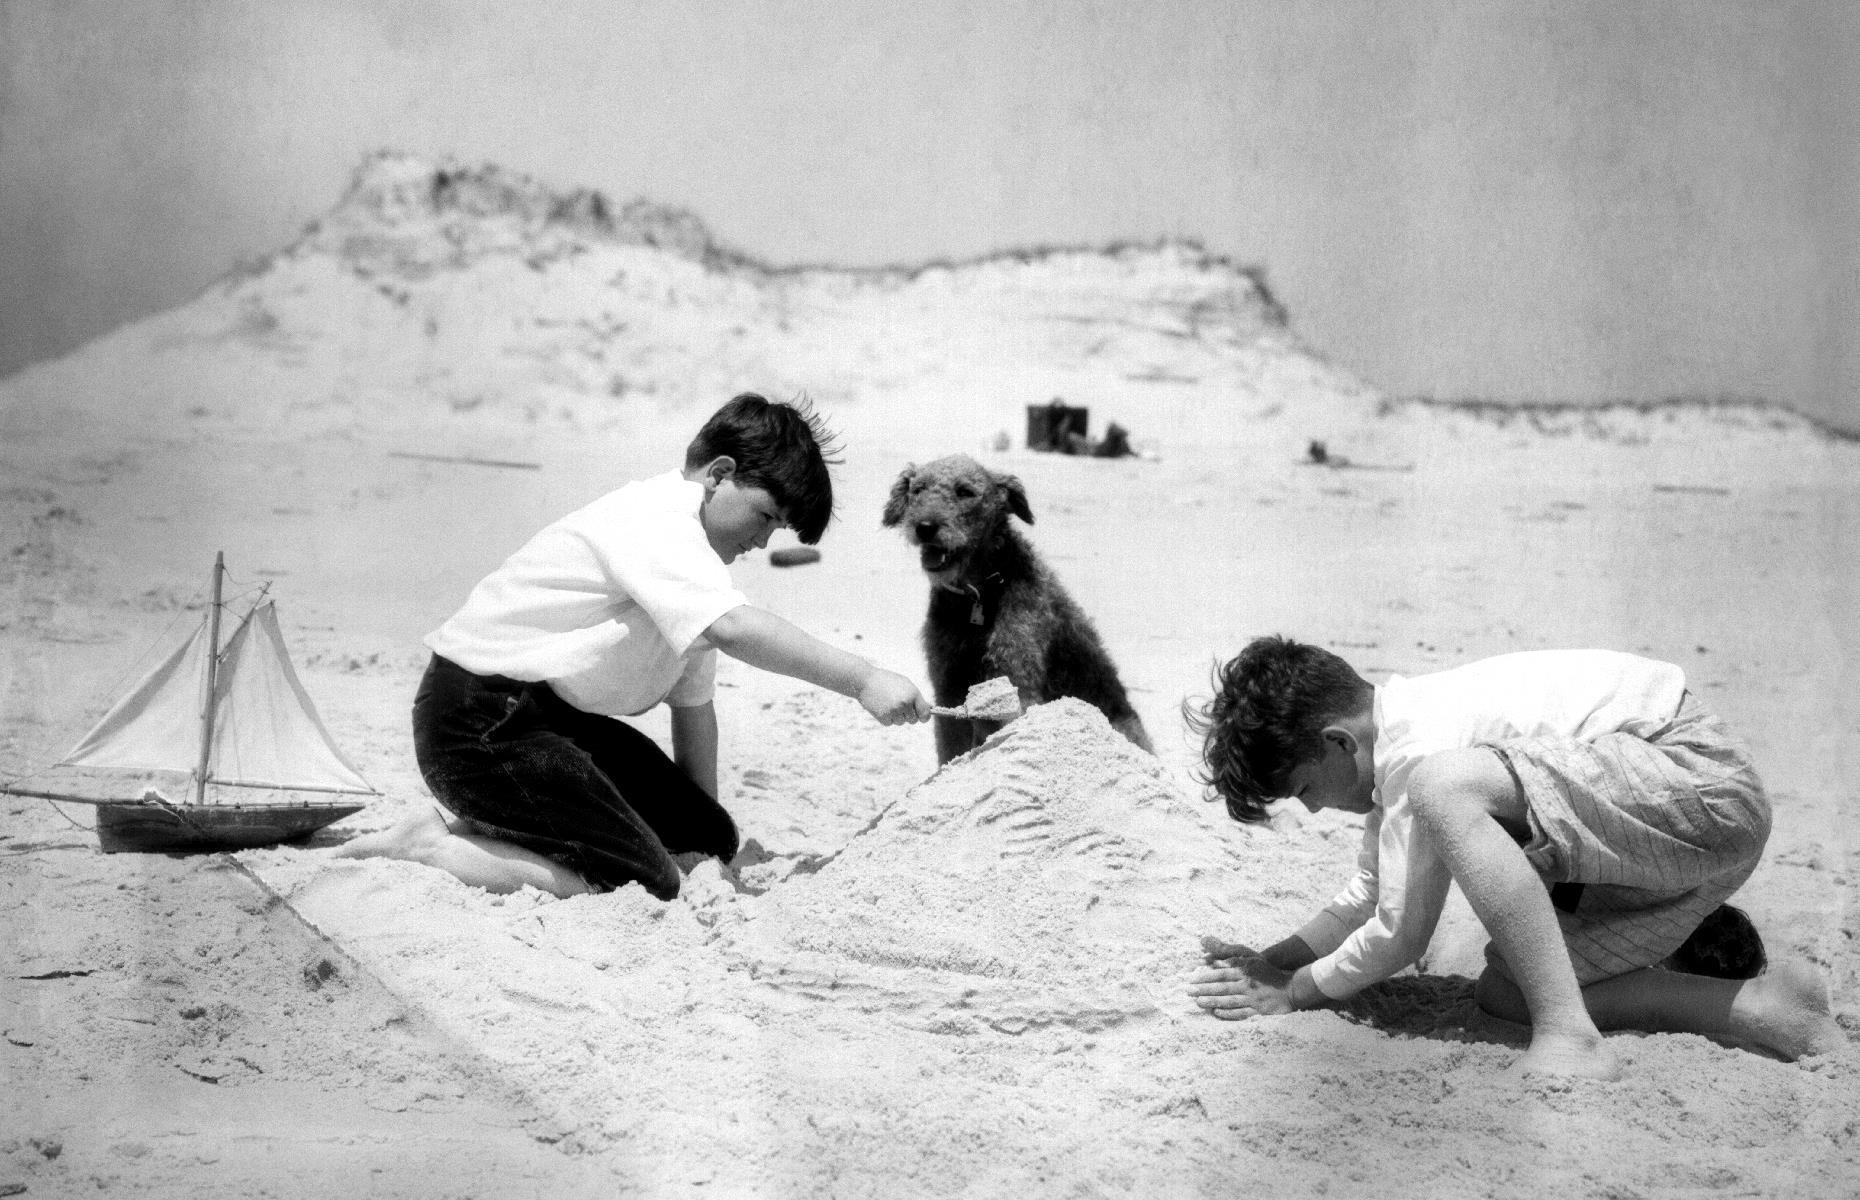 Slide 27 of 35: The post-pandemic vacation looked similar in America too, with many families staying close to home during their leisure time, either by choice or due to financial constraints. This trio of beach-goers build a sandcastle on New Jersey shores in 1934. Take a look at more vintage snaps of family vacations throughout the decades.